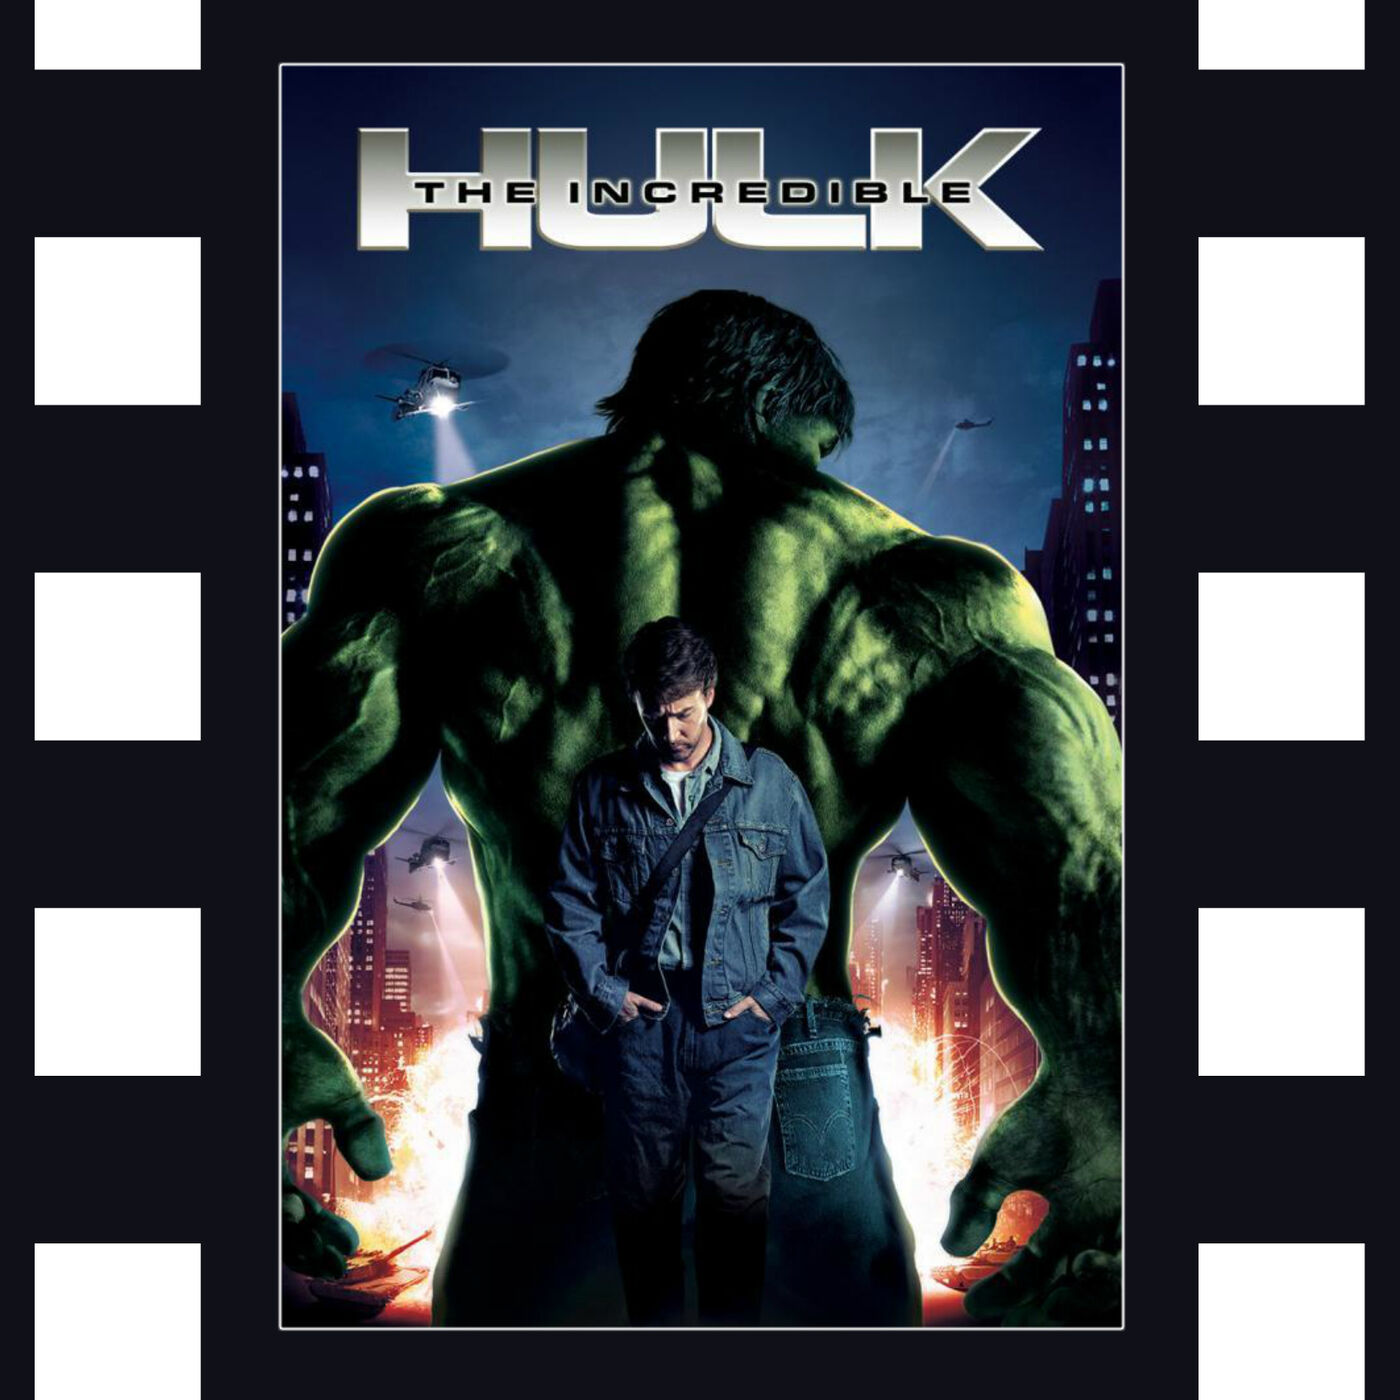 The Incredible Hulk - A Strange Anomaly in the Marvel Cinematic Universe